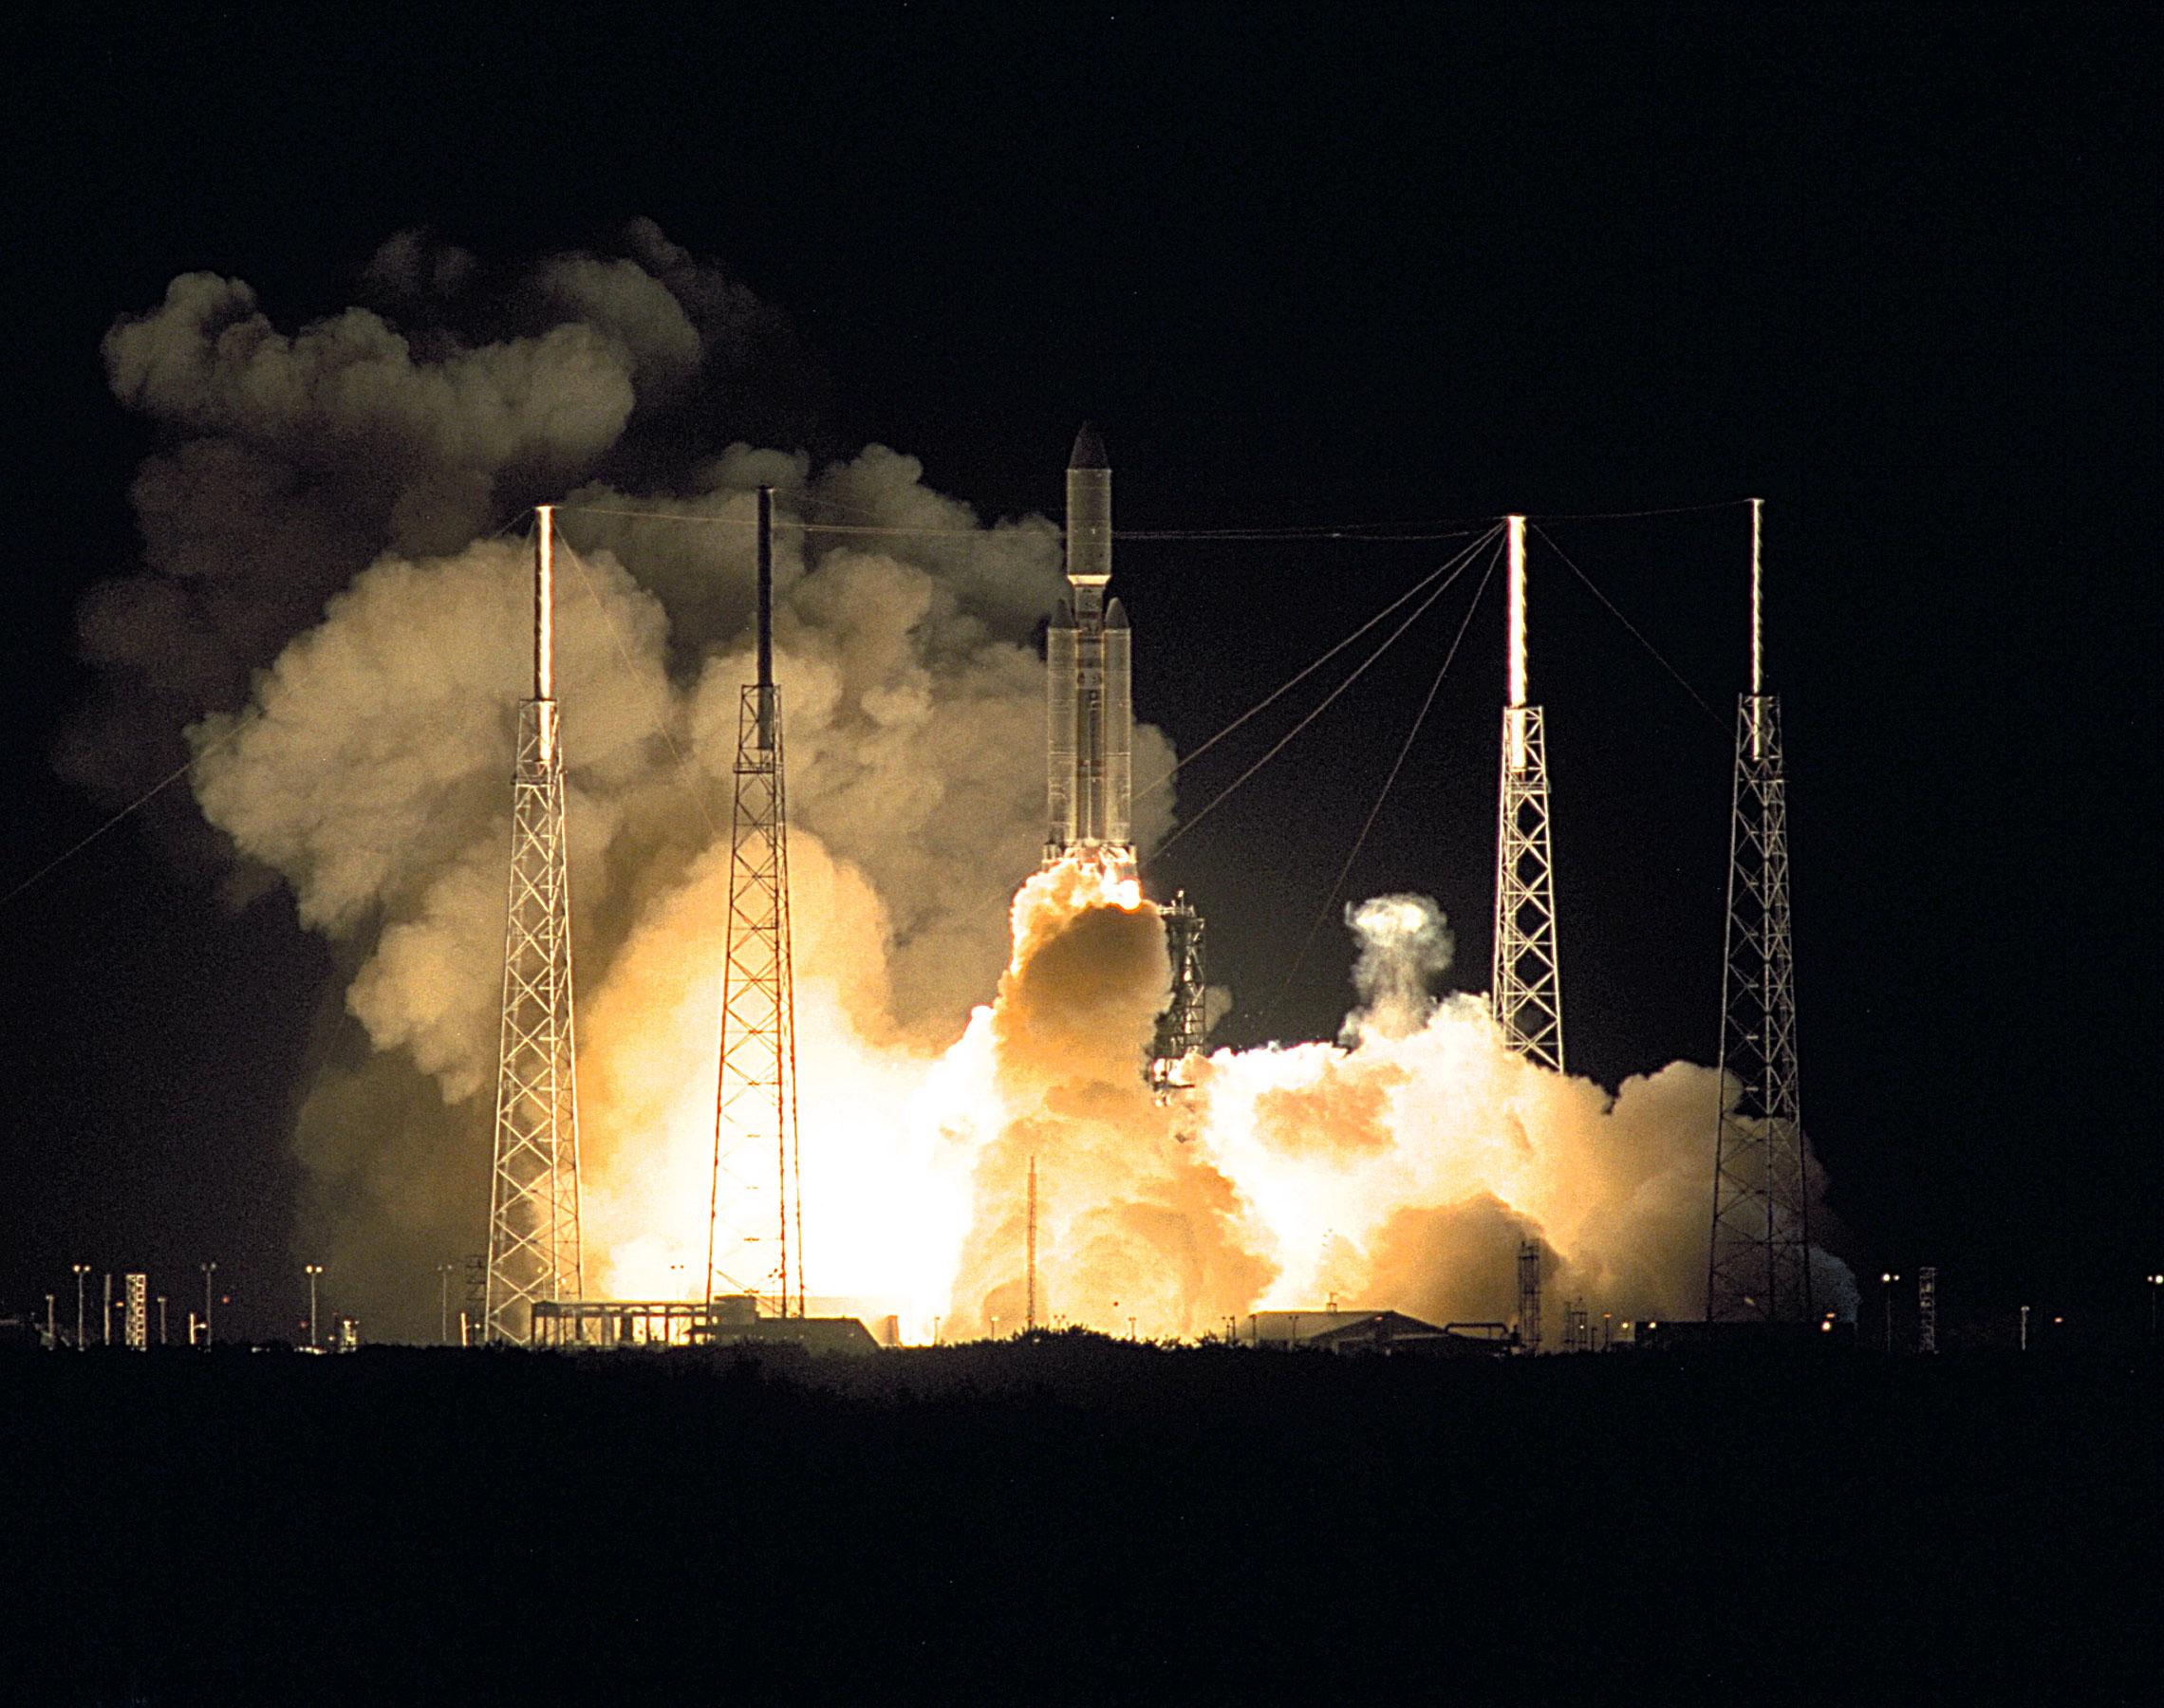 Color image of rocket launch